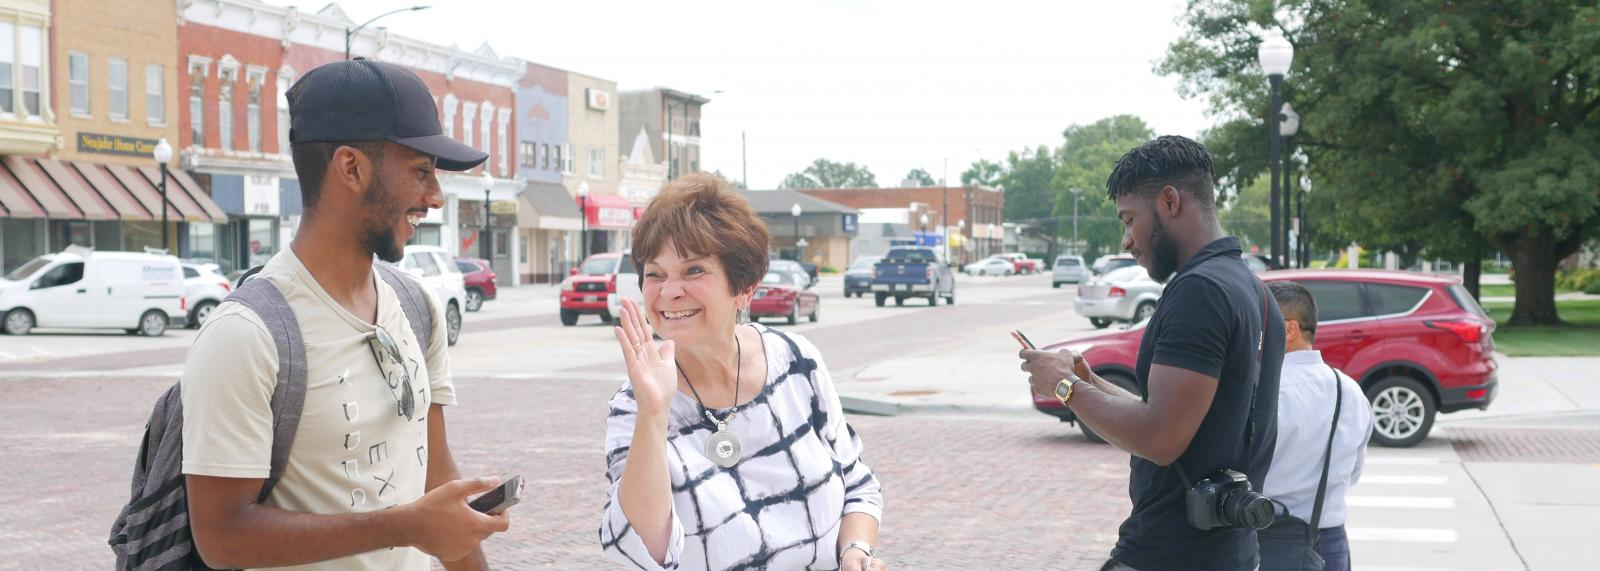 Students Touring David City to Assist with Economic Development Plan